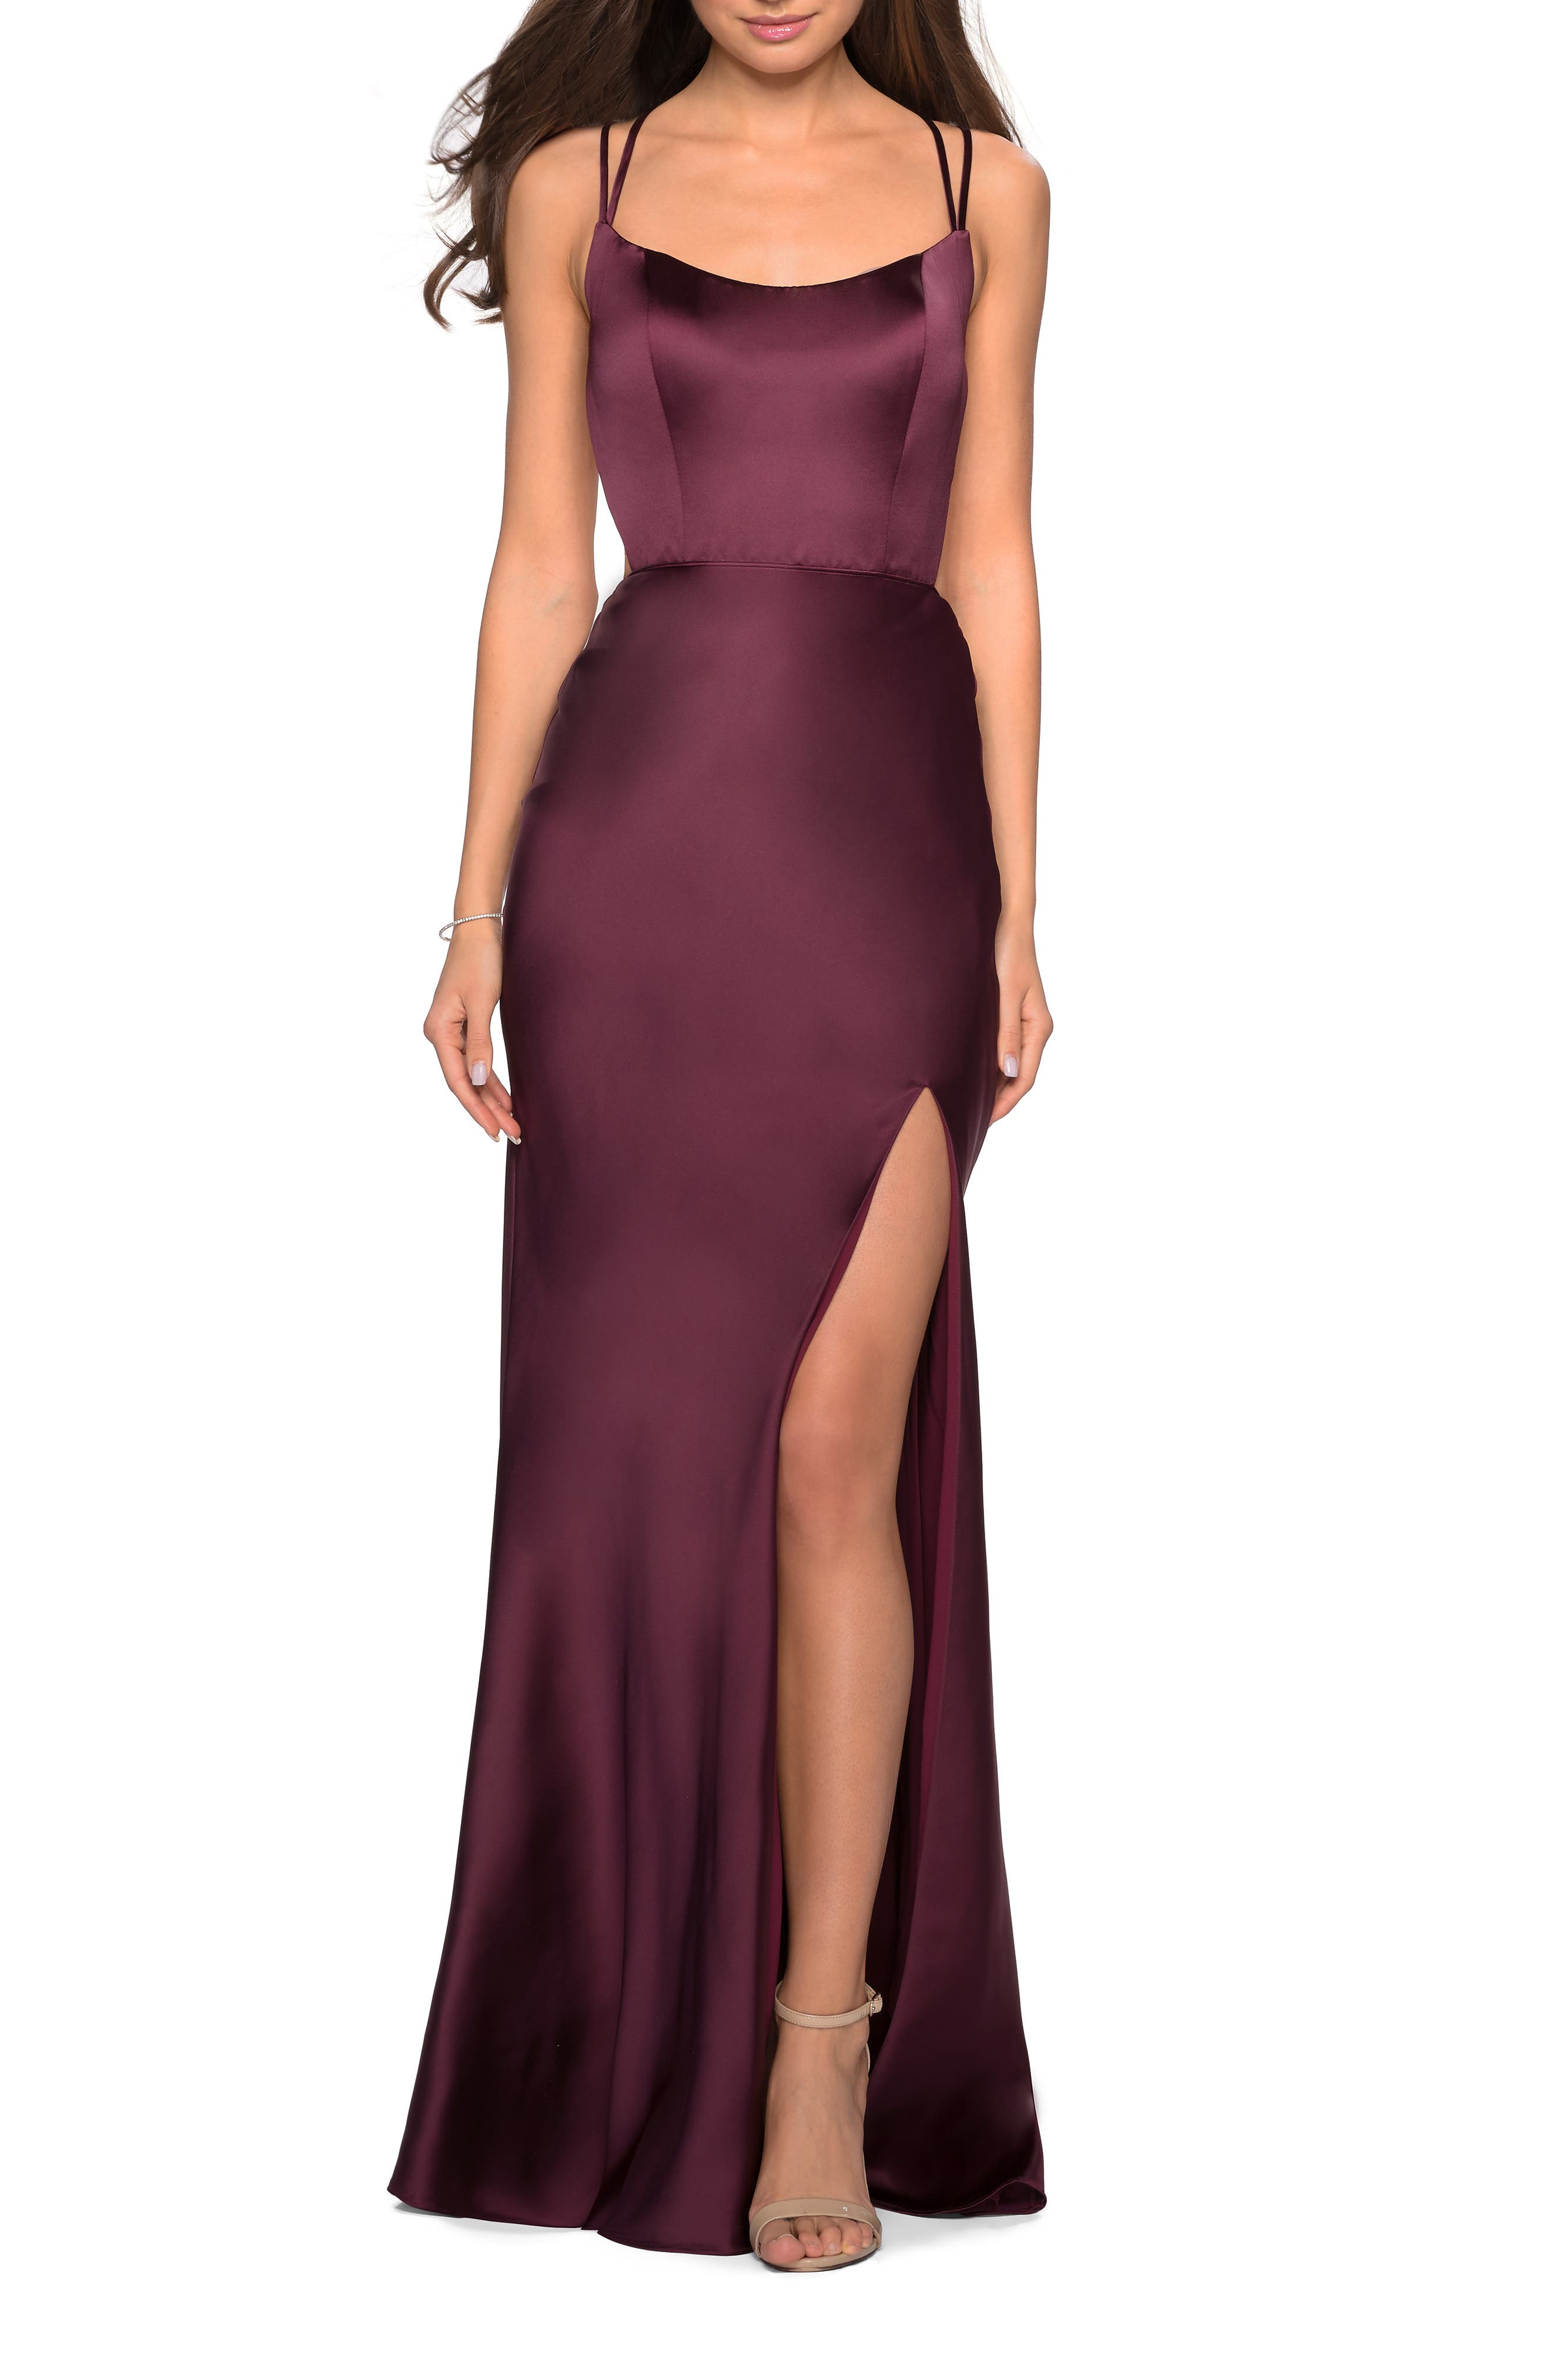 La Femme Strappy Back Fitted Satin Evening Dress